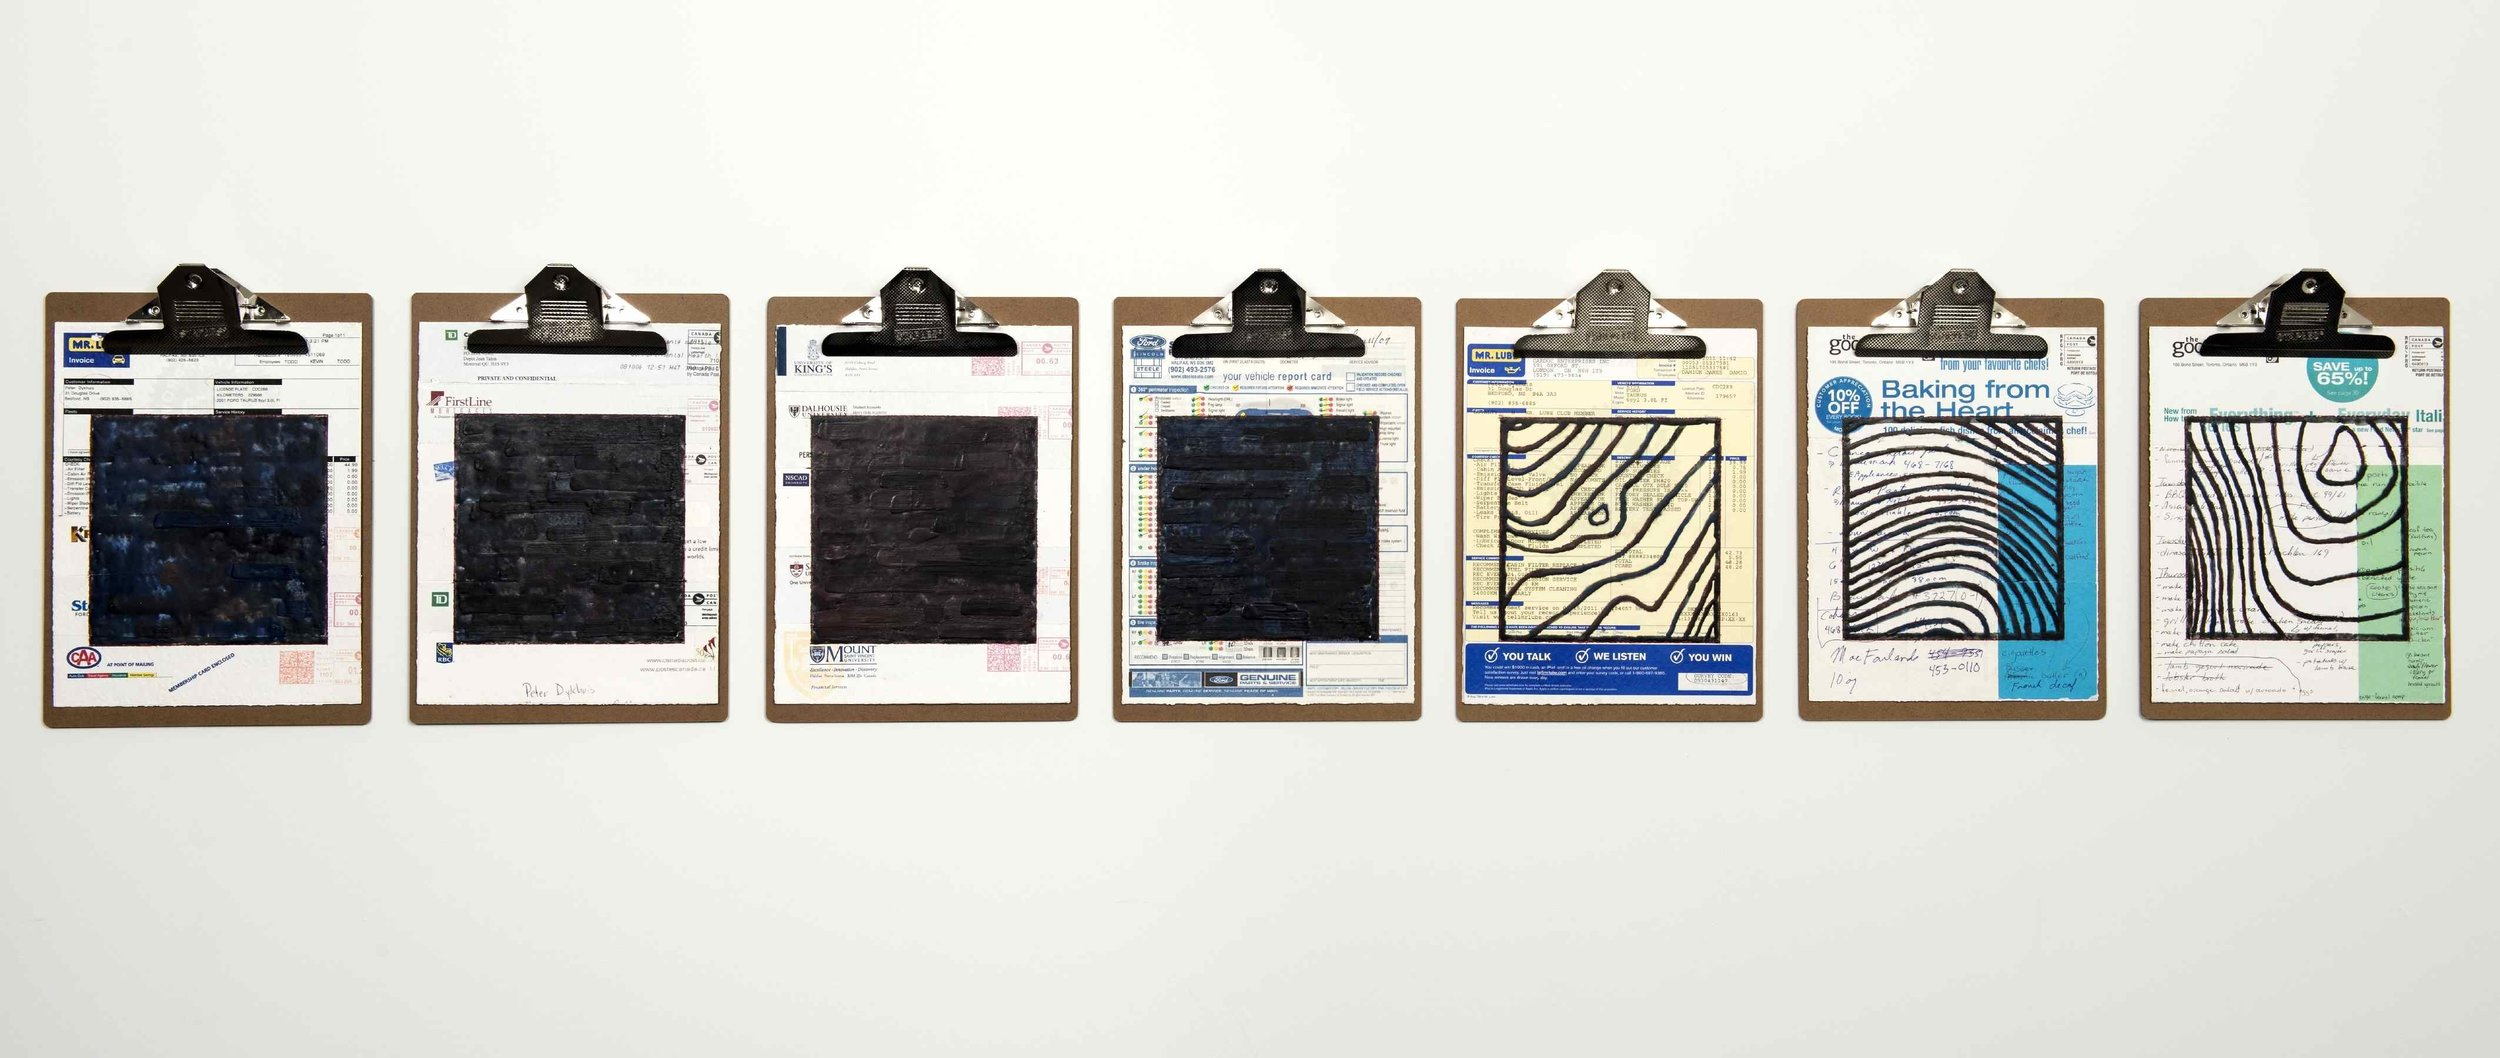 """Home Front #1, 2013 encaustic, mixed media collage on paper, mounted on 7 commercial clipboards, 13"""" × 69"""", installed photo: Steve Farmer, set of clipboards depicted counts as one artwork, 525 CAD"""